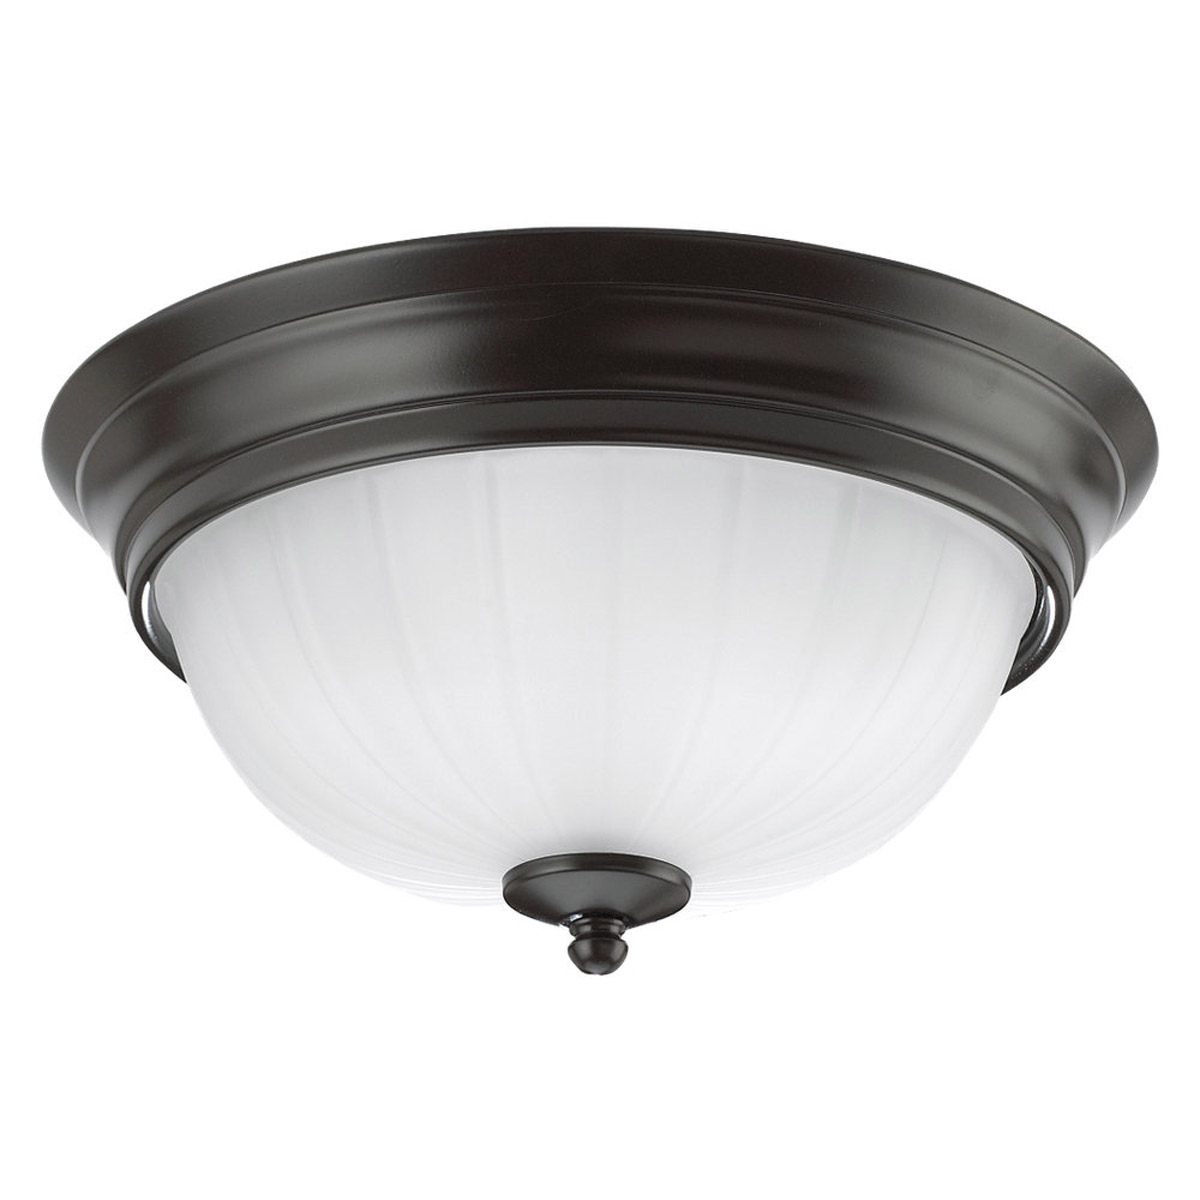 Sea Gull Lighting Linwood 3 Light Flush Mount in Heirloom Bronze 7506-782